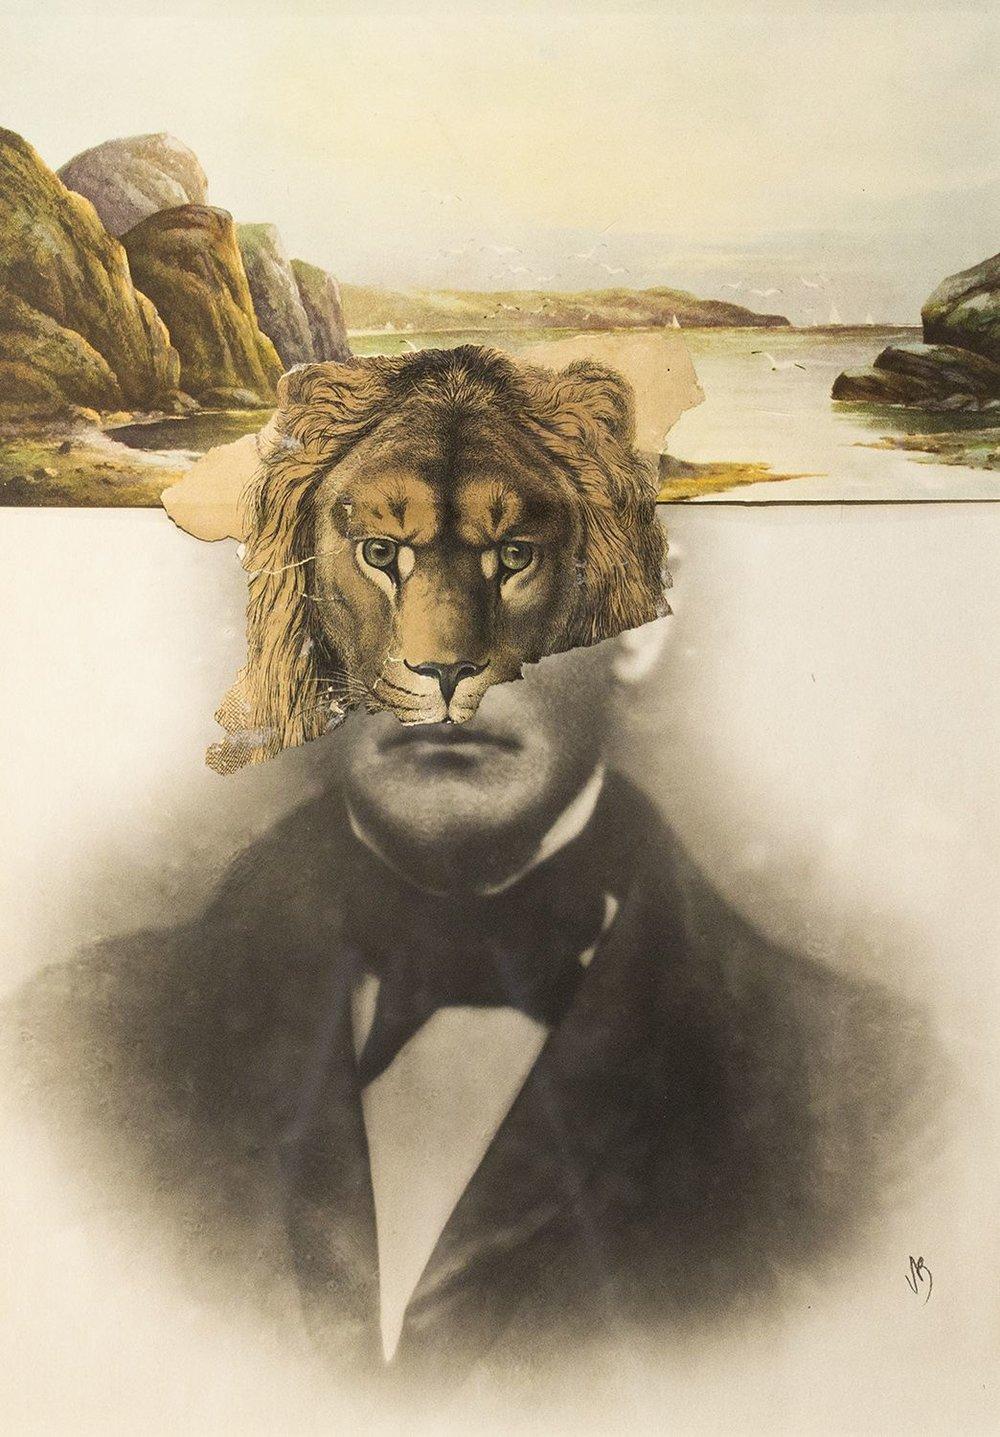 Self Portrait as a Lion (2006)